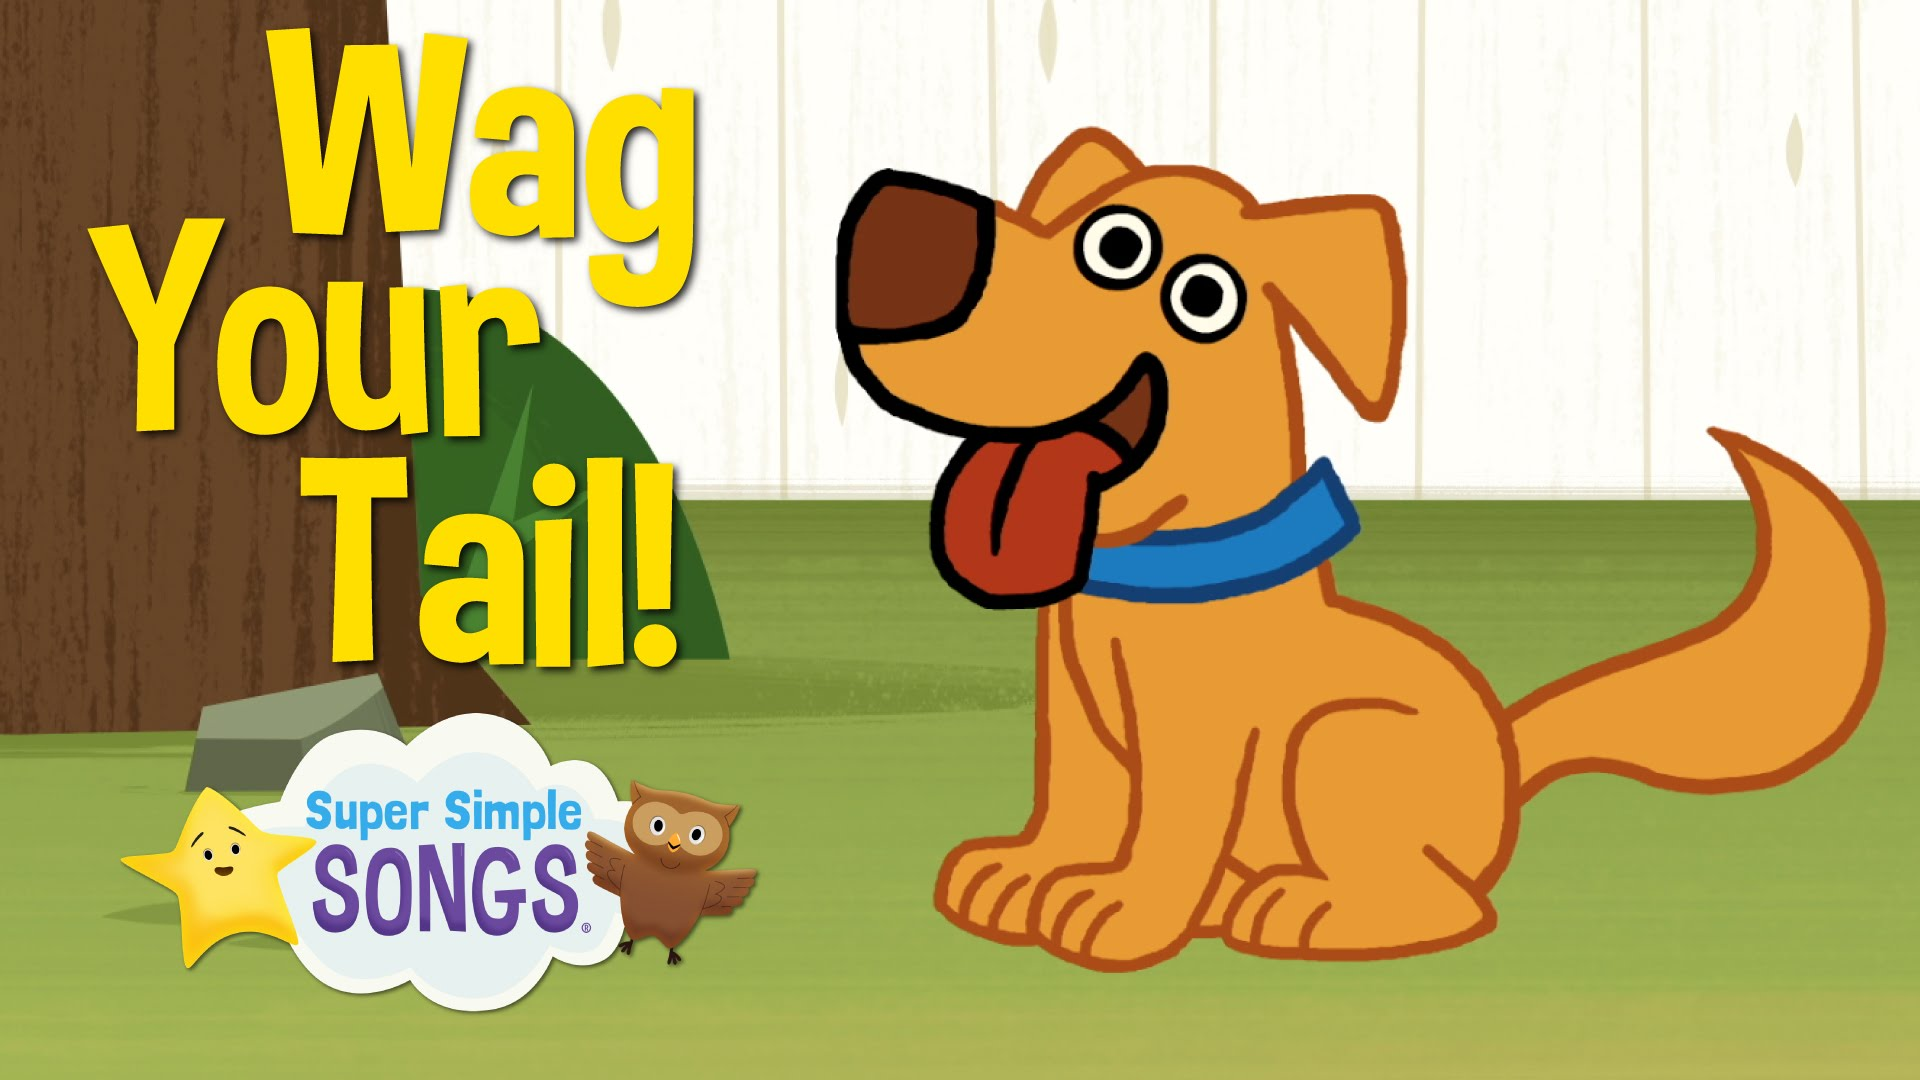 Wag your tail animal. Action clipart simple